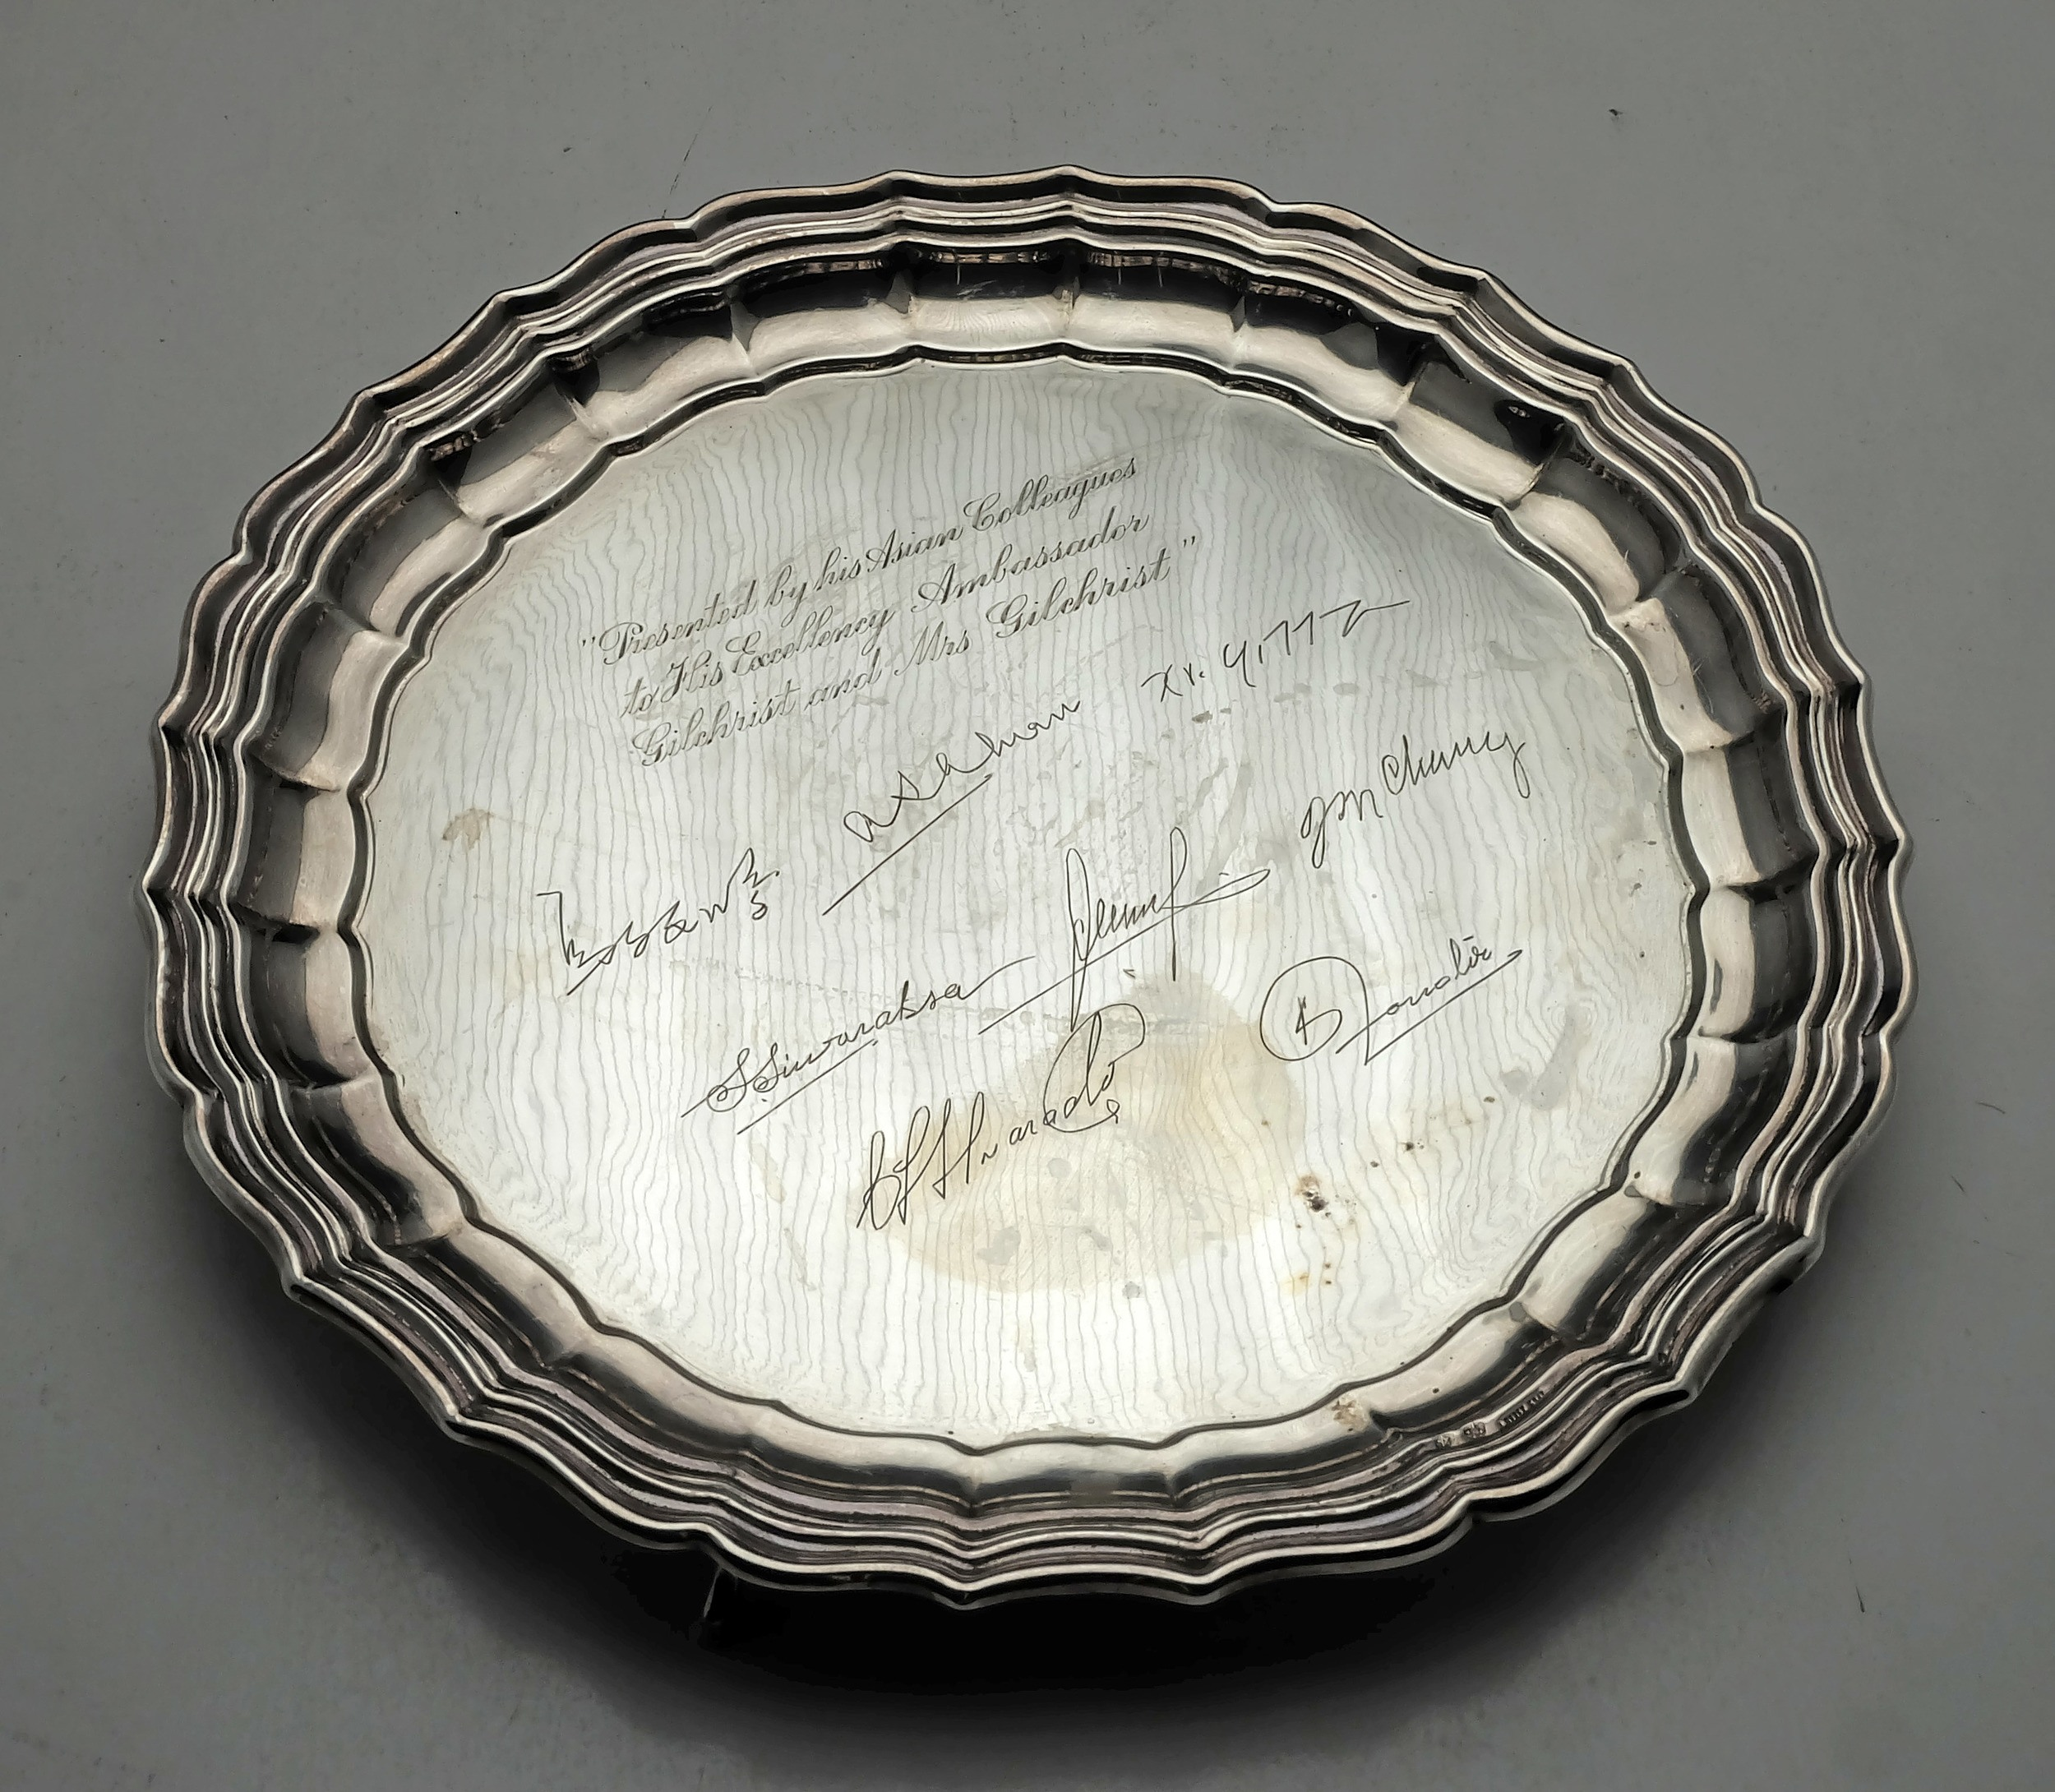 'Engraved Spanish Silver Salver Presented by His Asian Colleagues to his Excellency Ambassador Gilchrist and Mrs Gilchrist 311g'